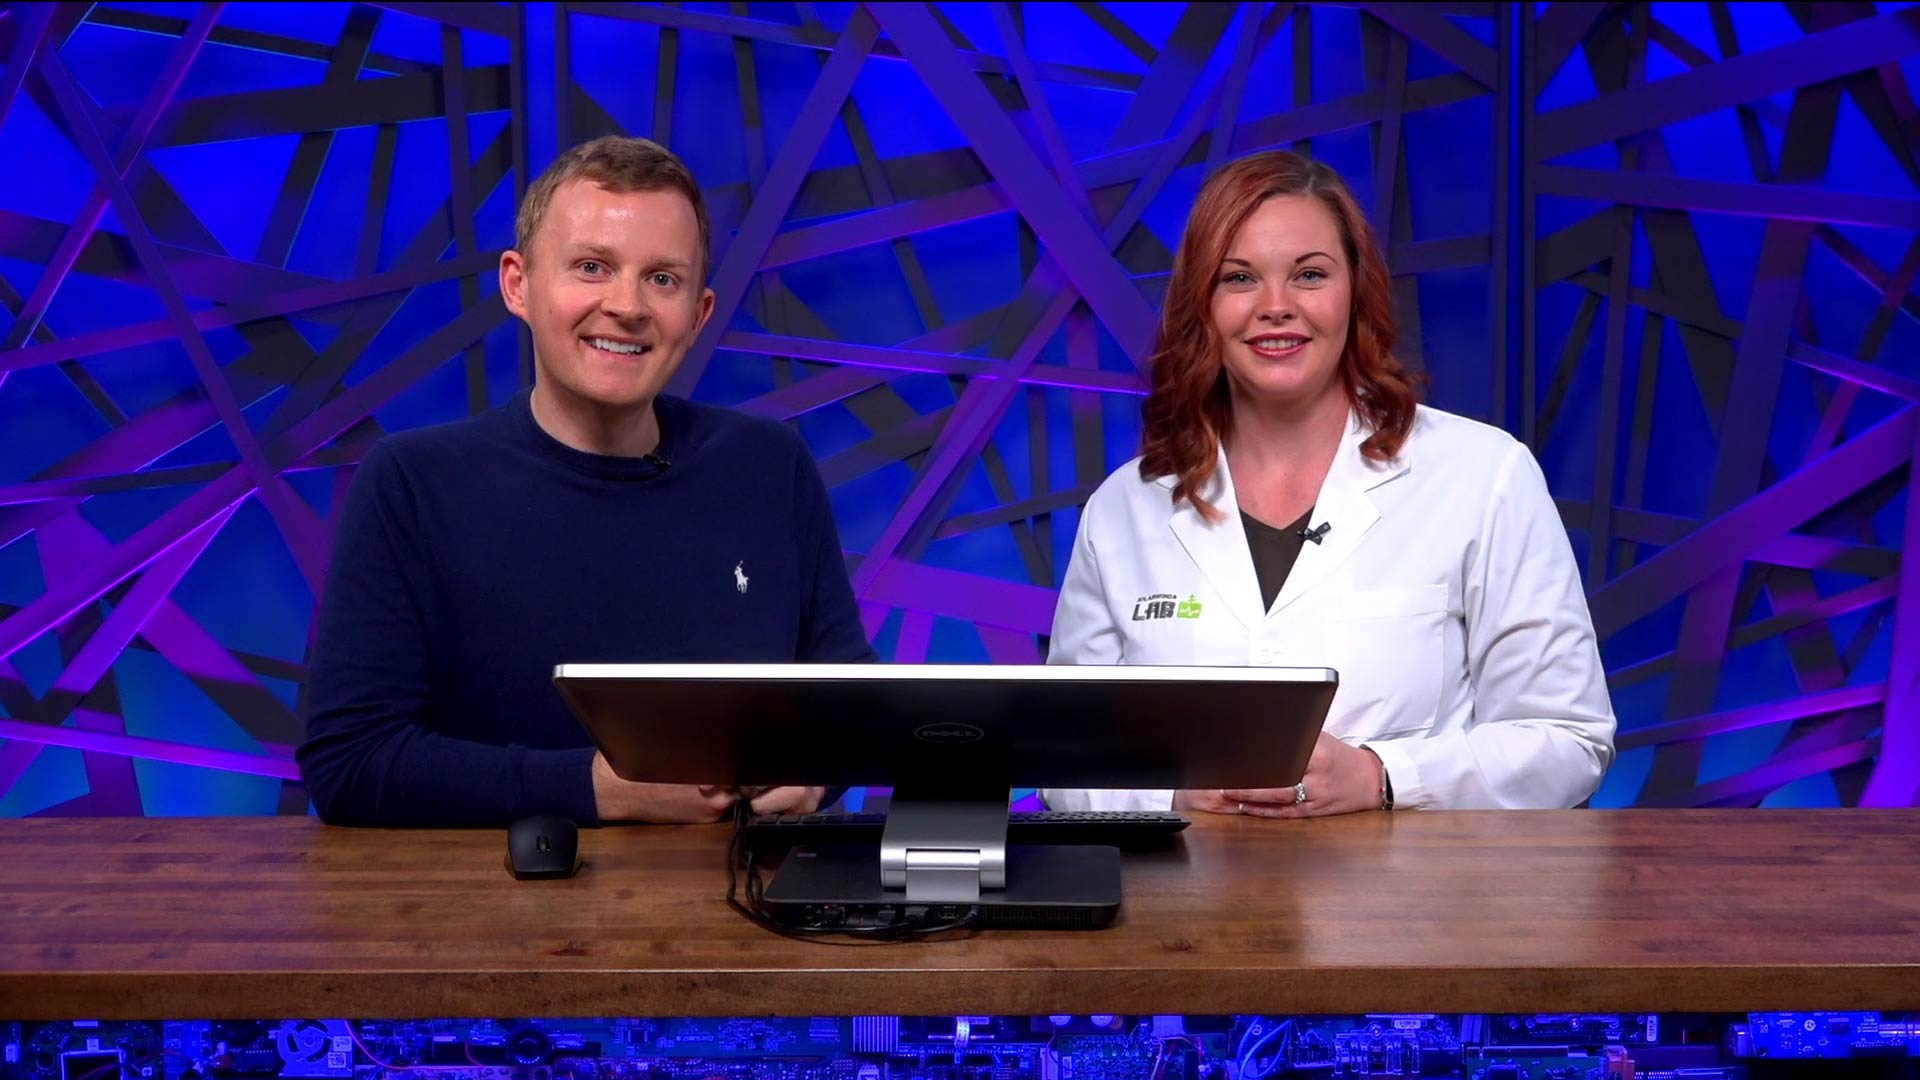 Security Tools Deep Dive - SolarWinds Lab Episode #62